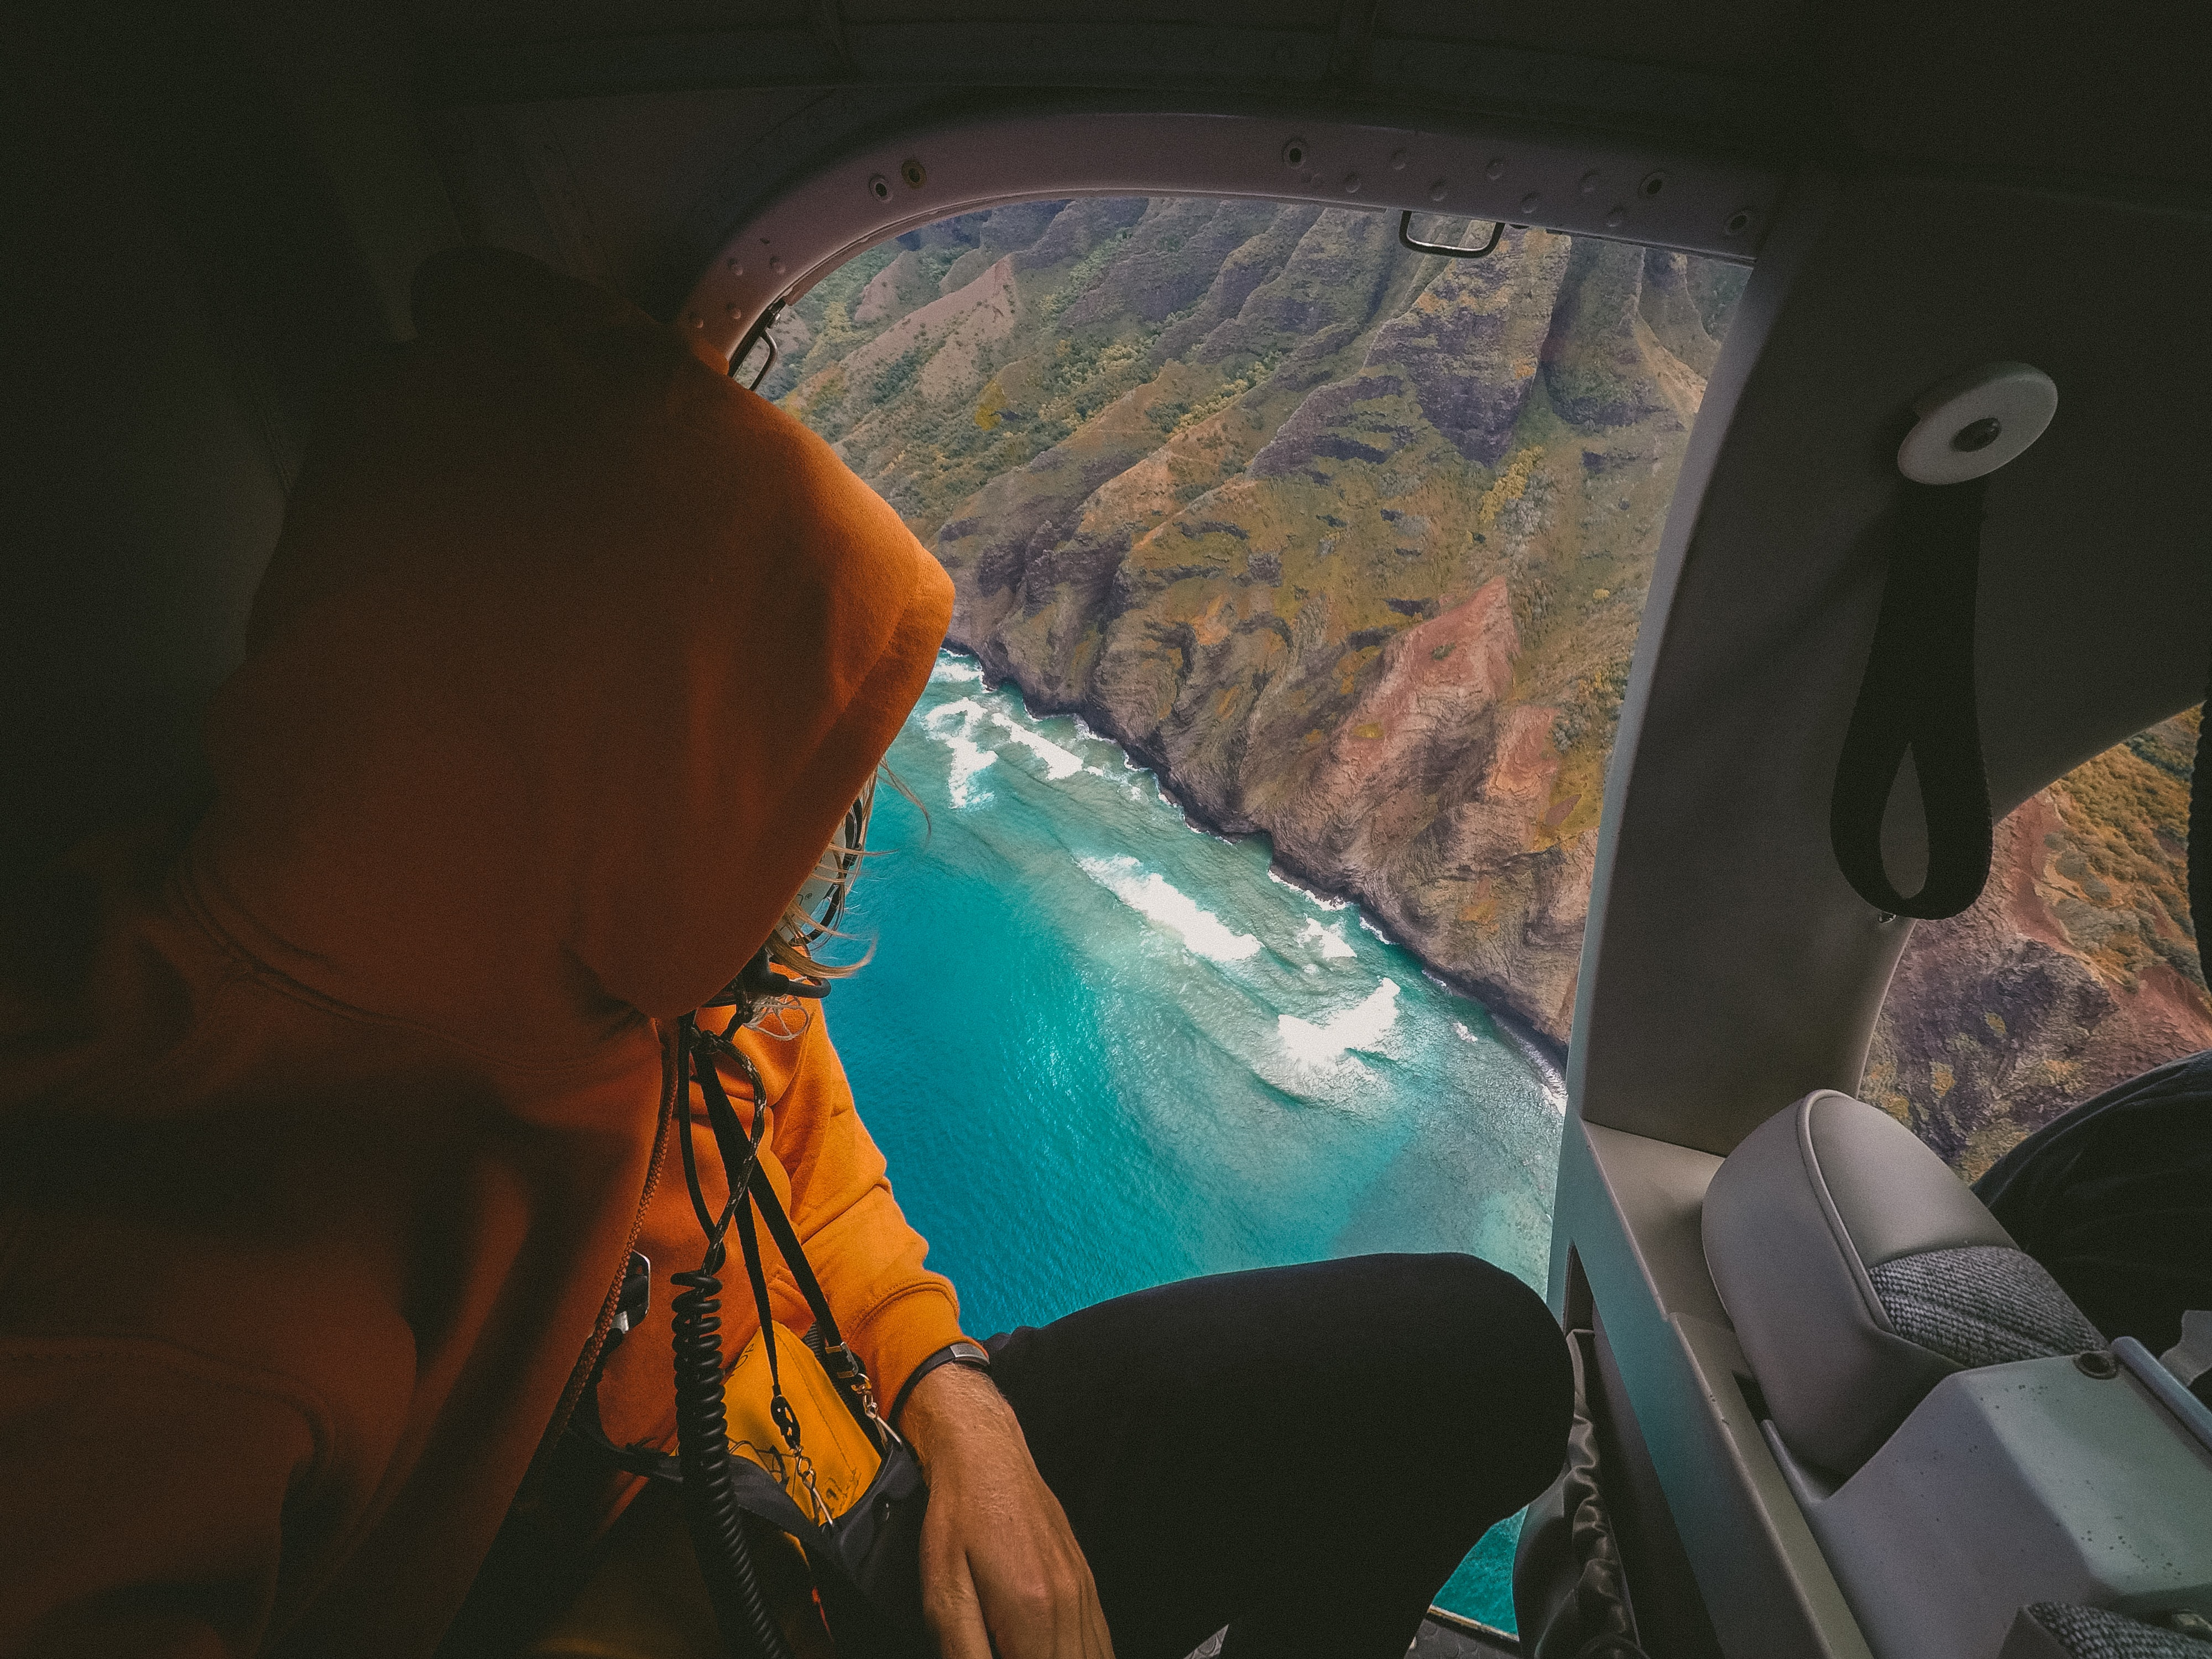 A person in an orange parka sitting in a helicopter with an azure coast visible in the window